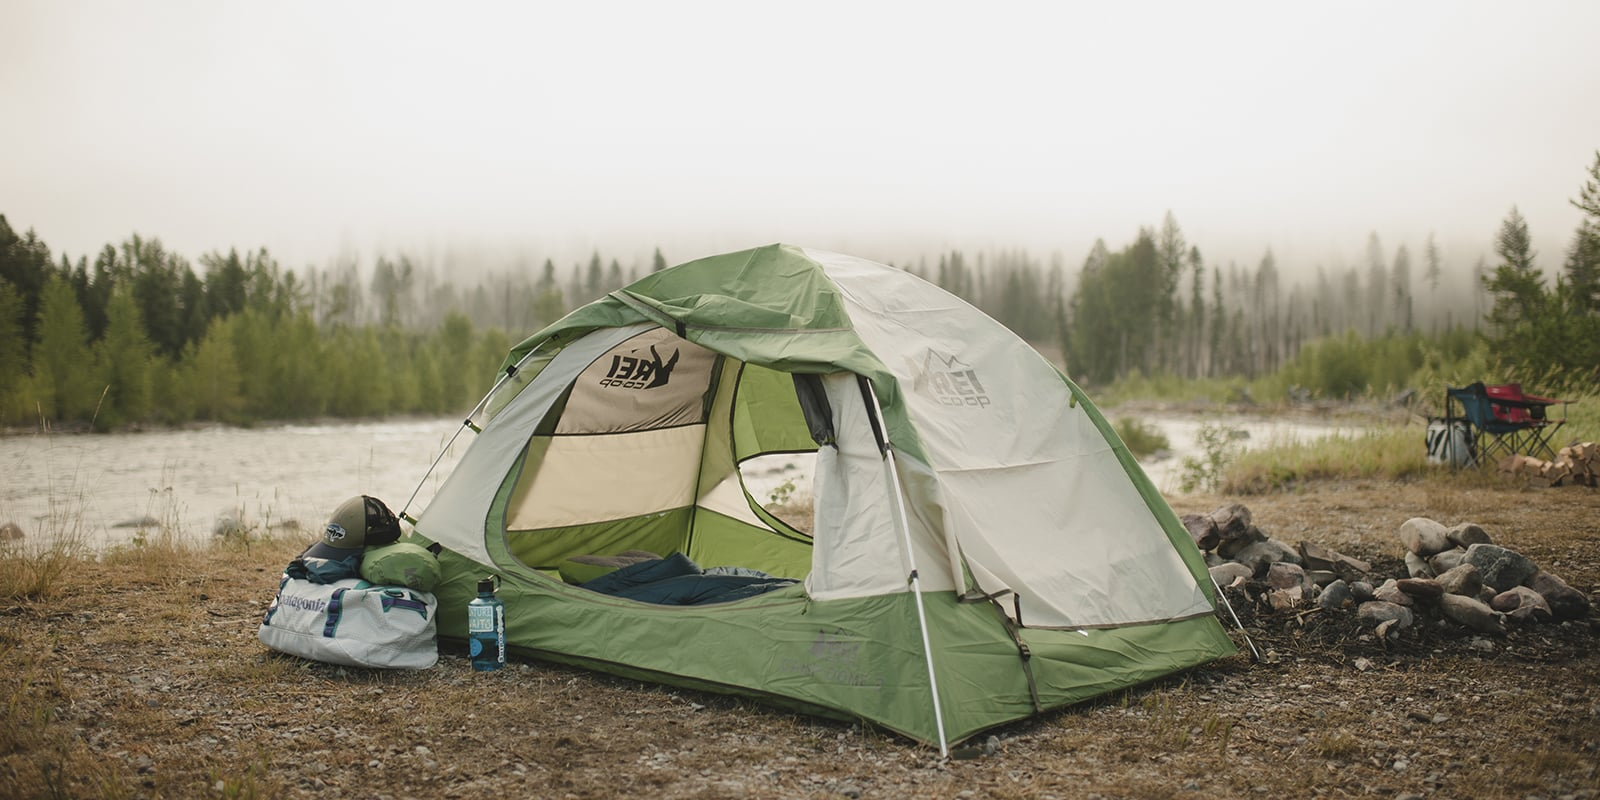 Best Tents For High Wind The Best Tent for High Winds –Reliable and Steady Shelters For Your Outdoor Adventures